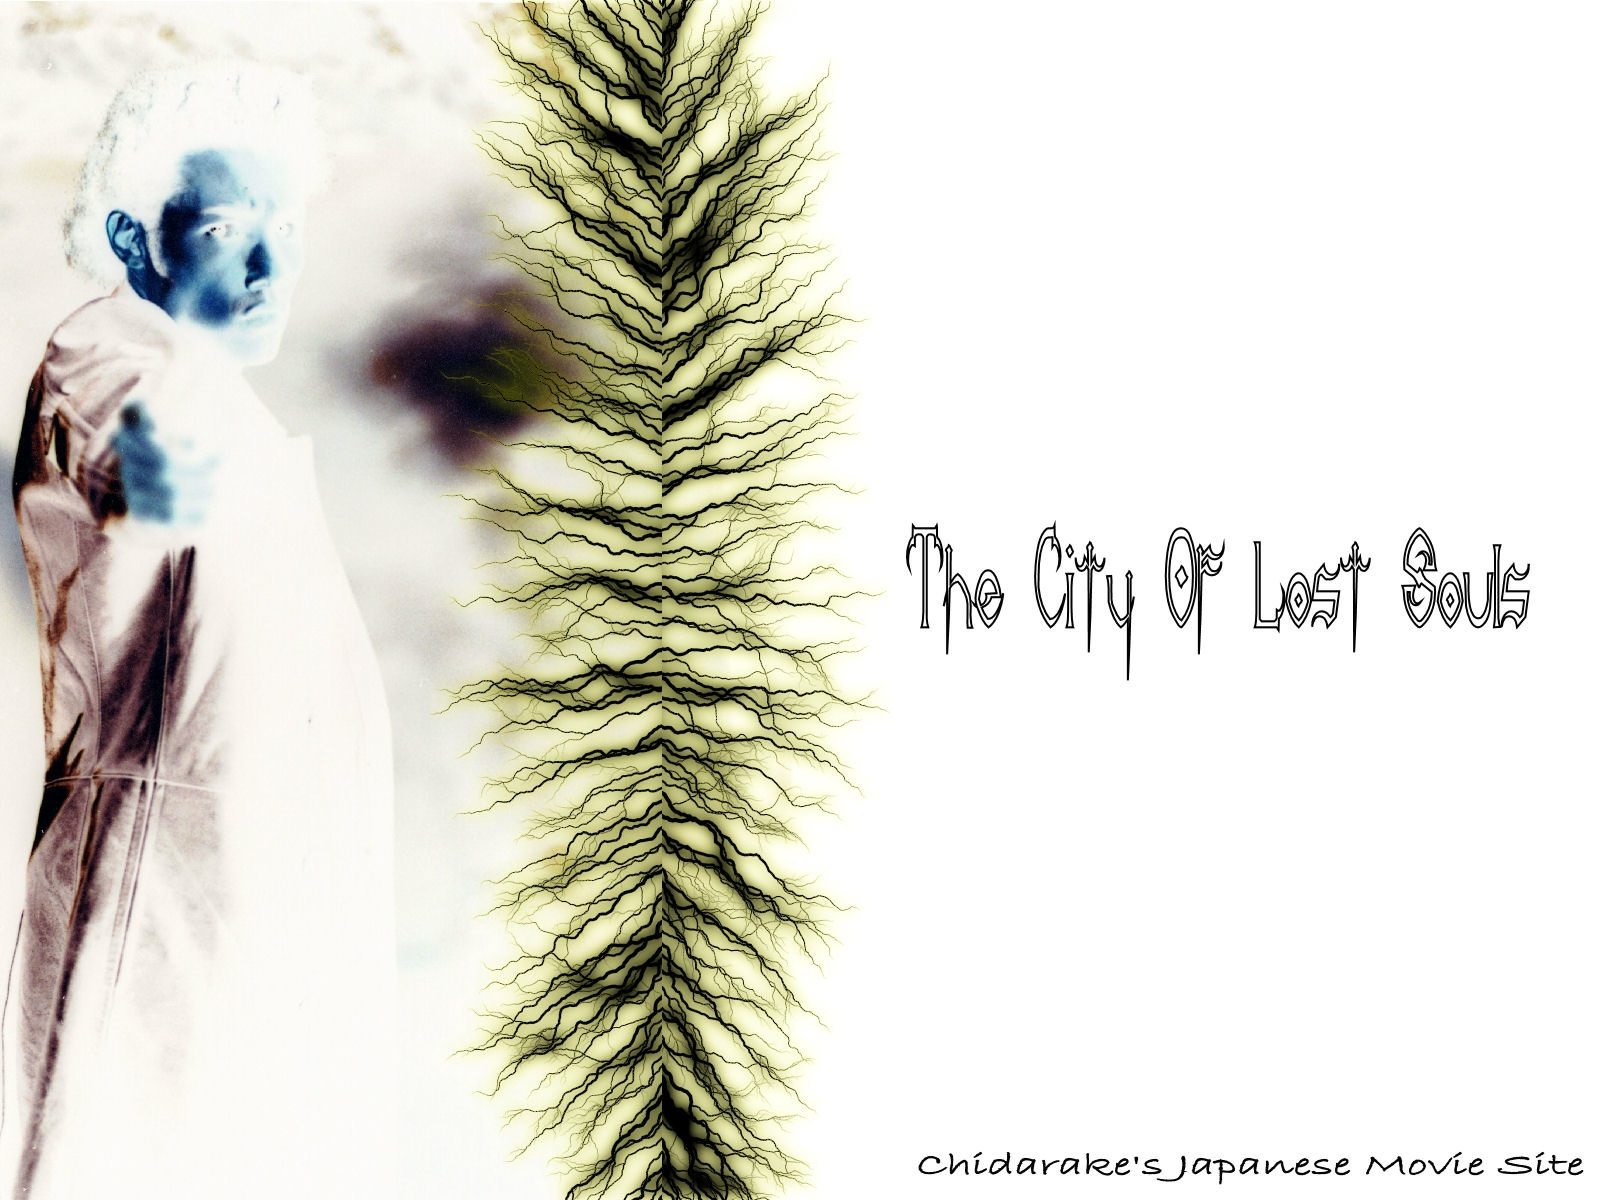 The city of lost souls 2